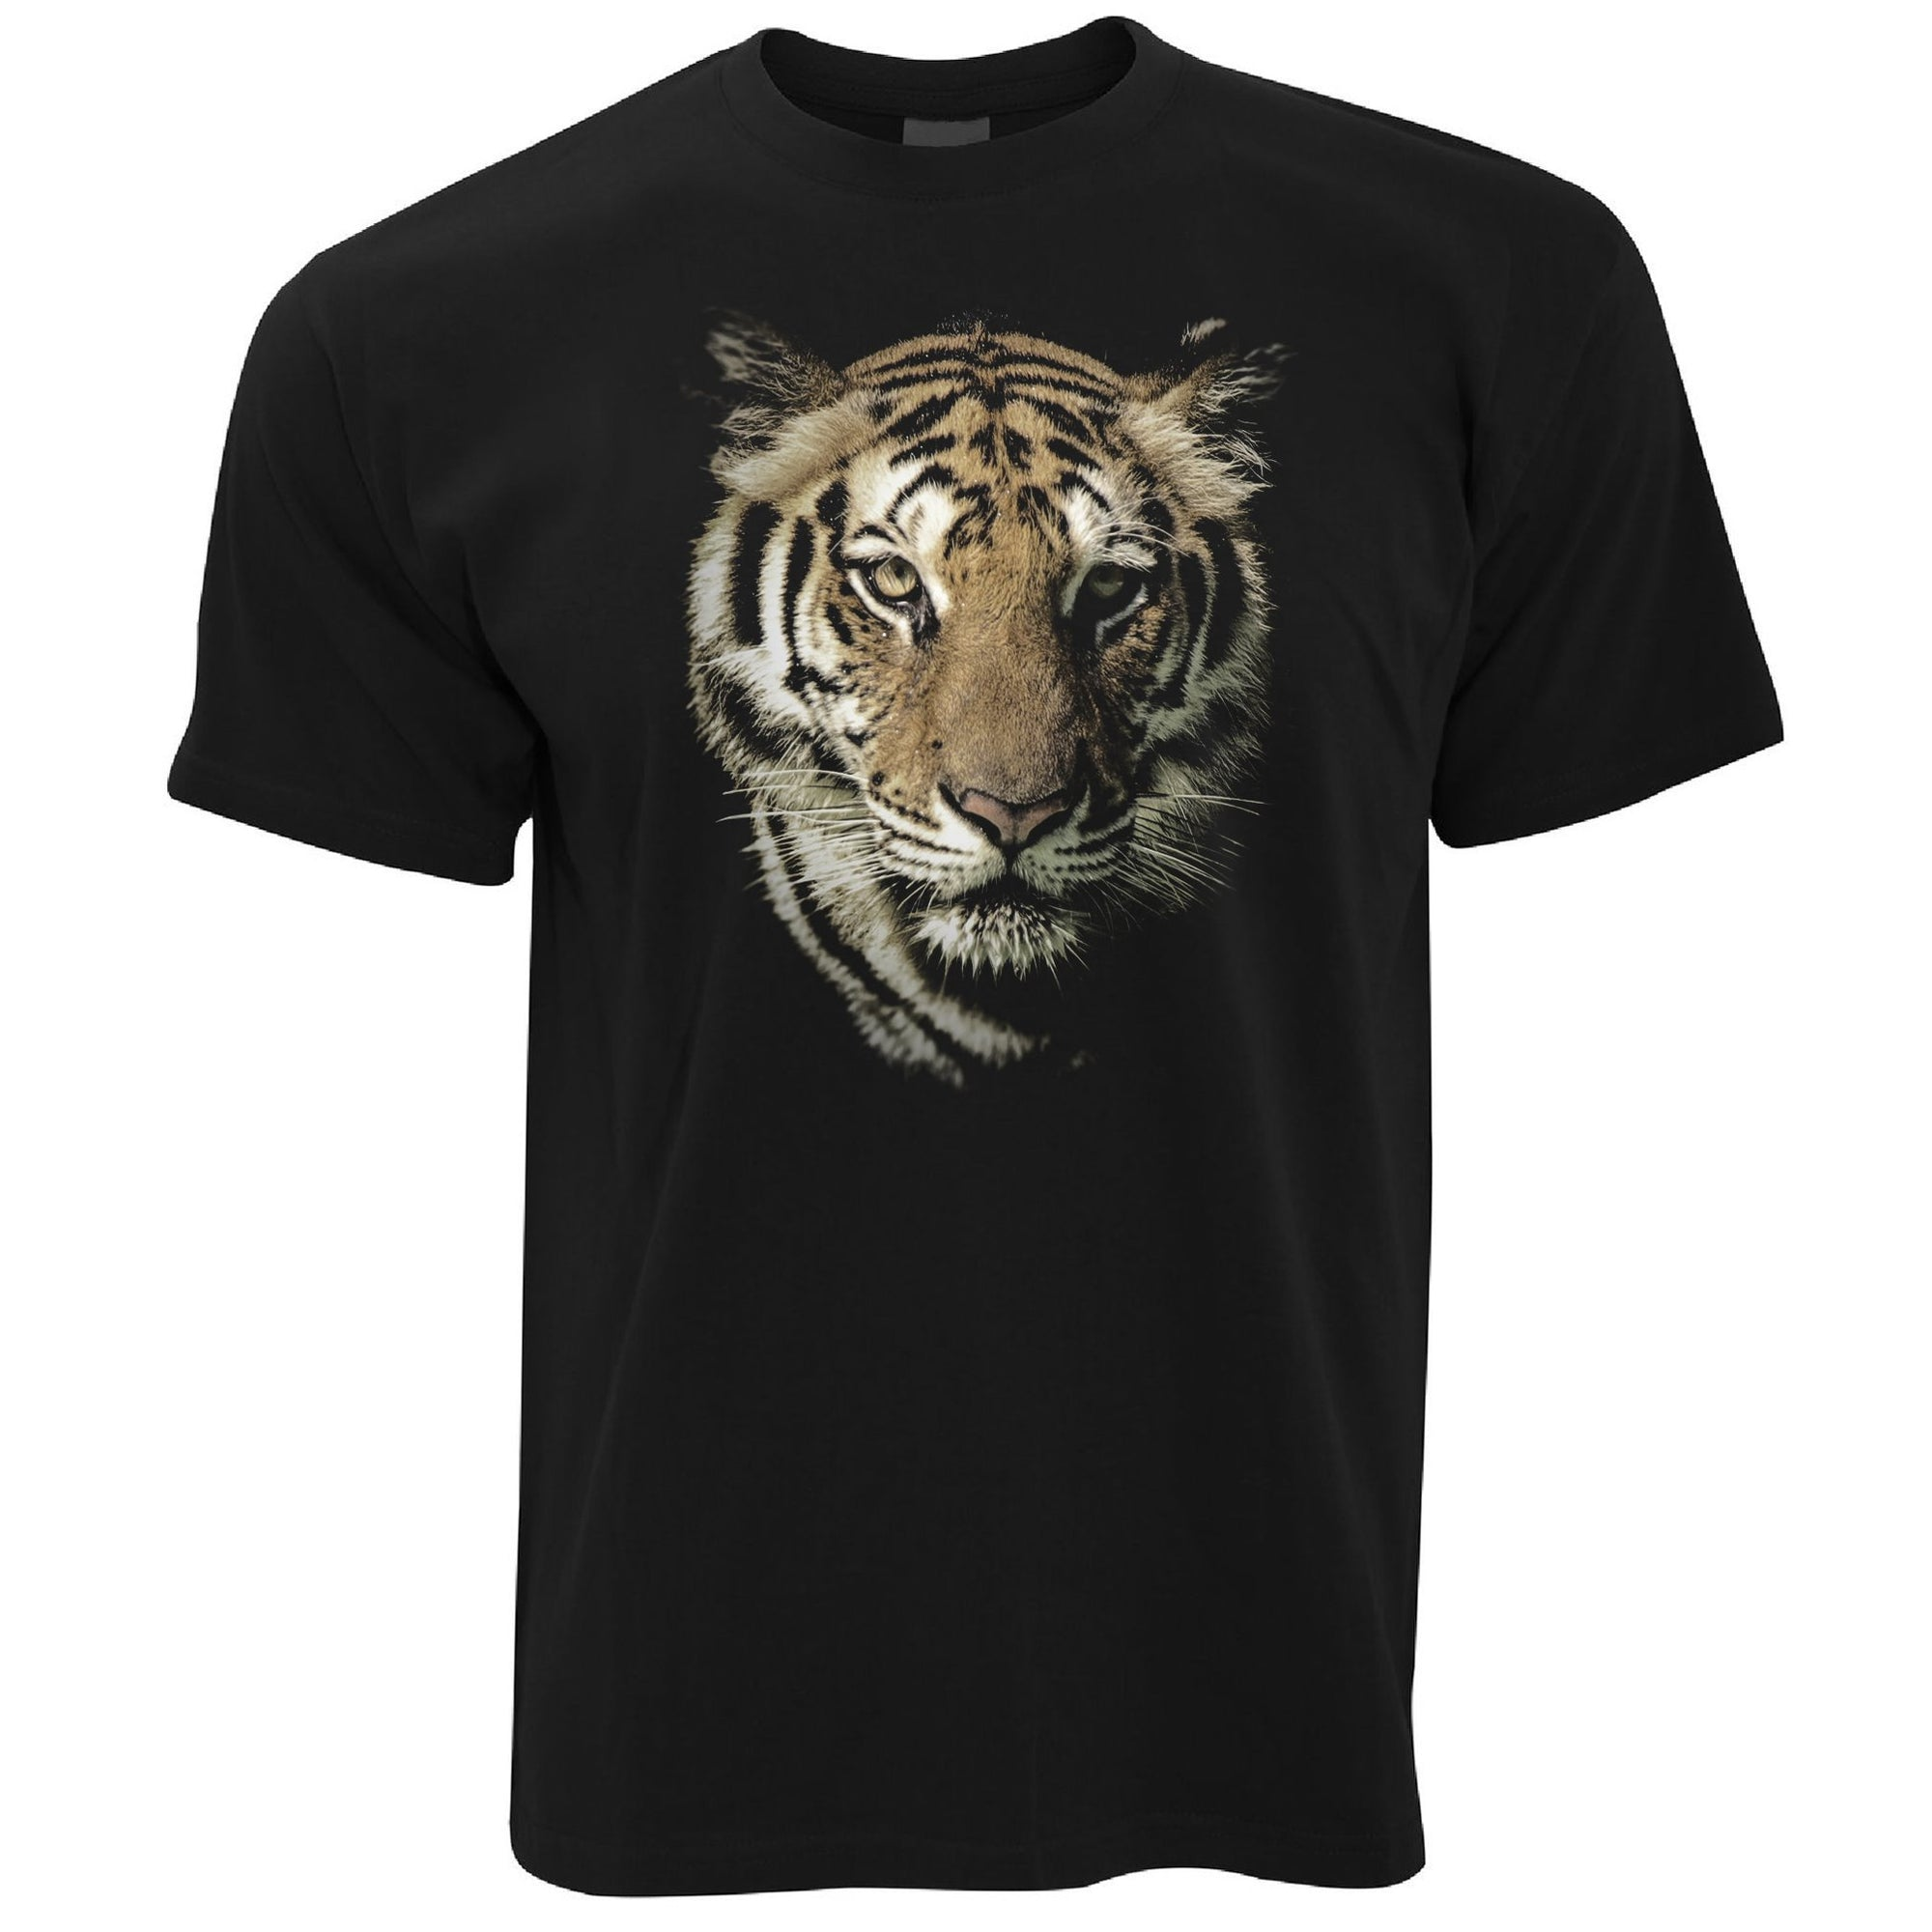 Tiger Face T Shirt Majestic Big Cat Head